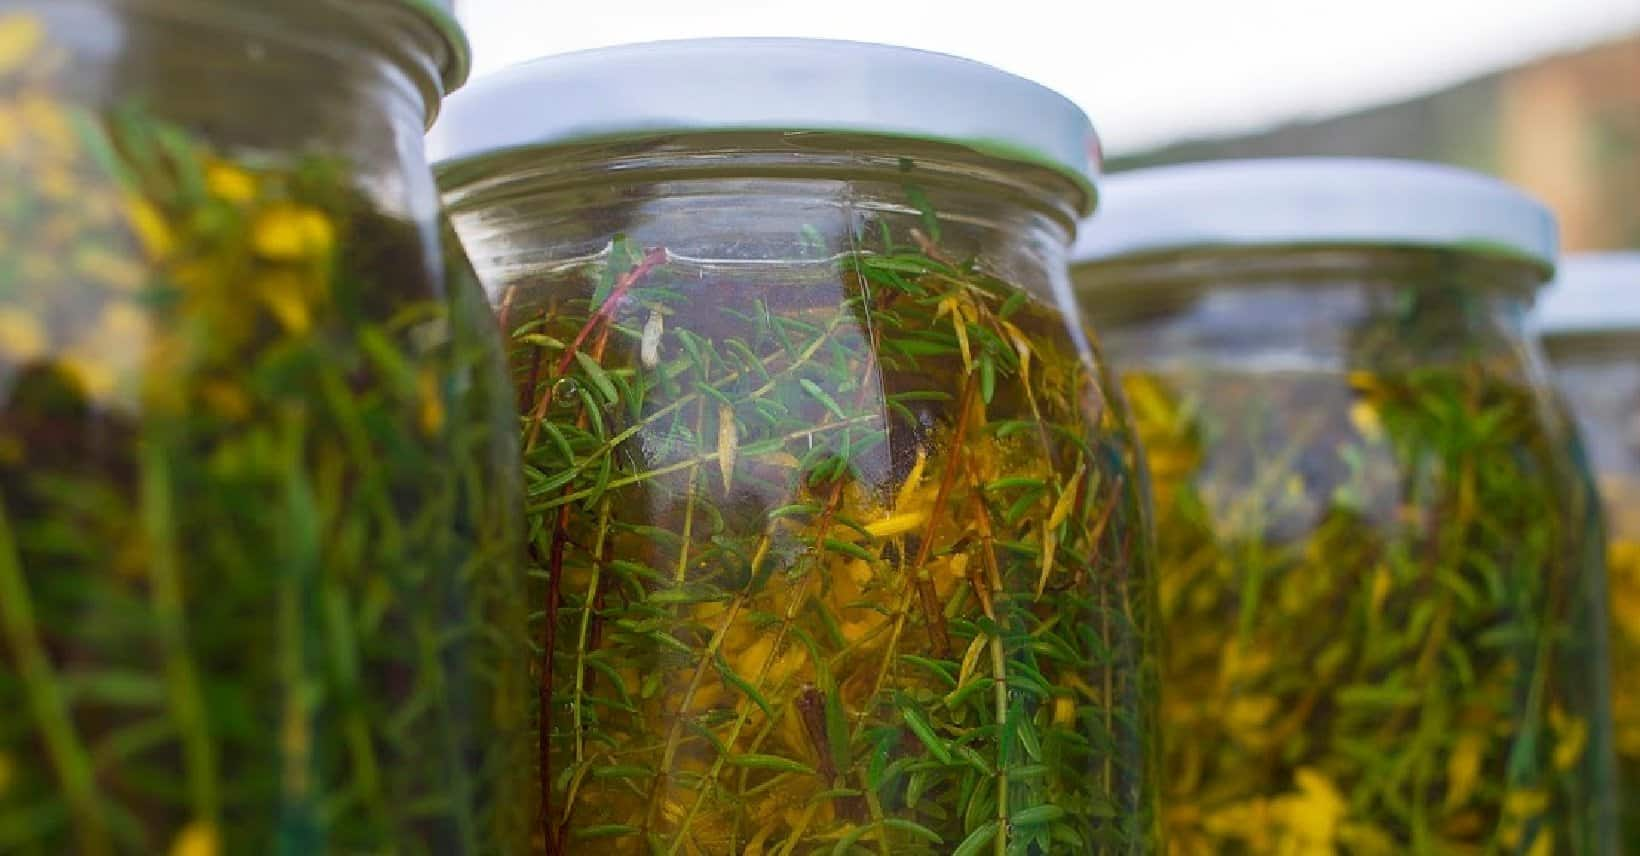 Herbs infusing in carrier oils for future use in skin care products